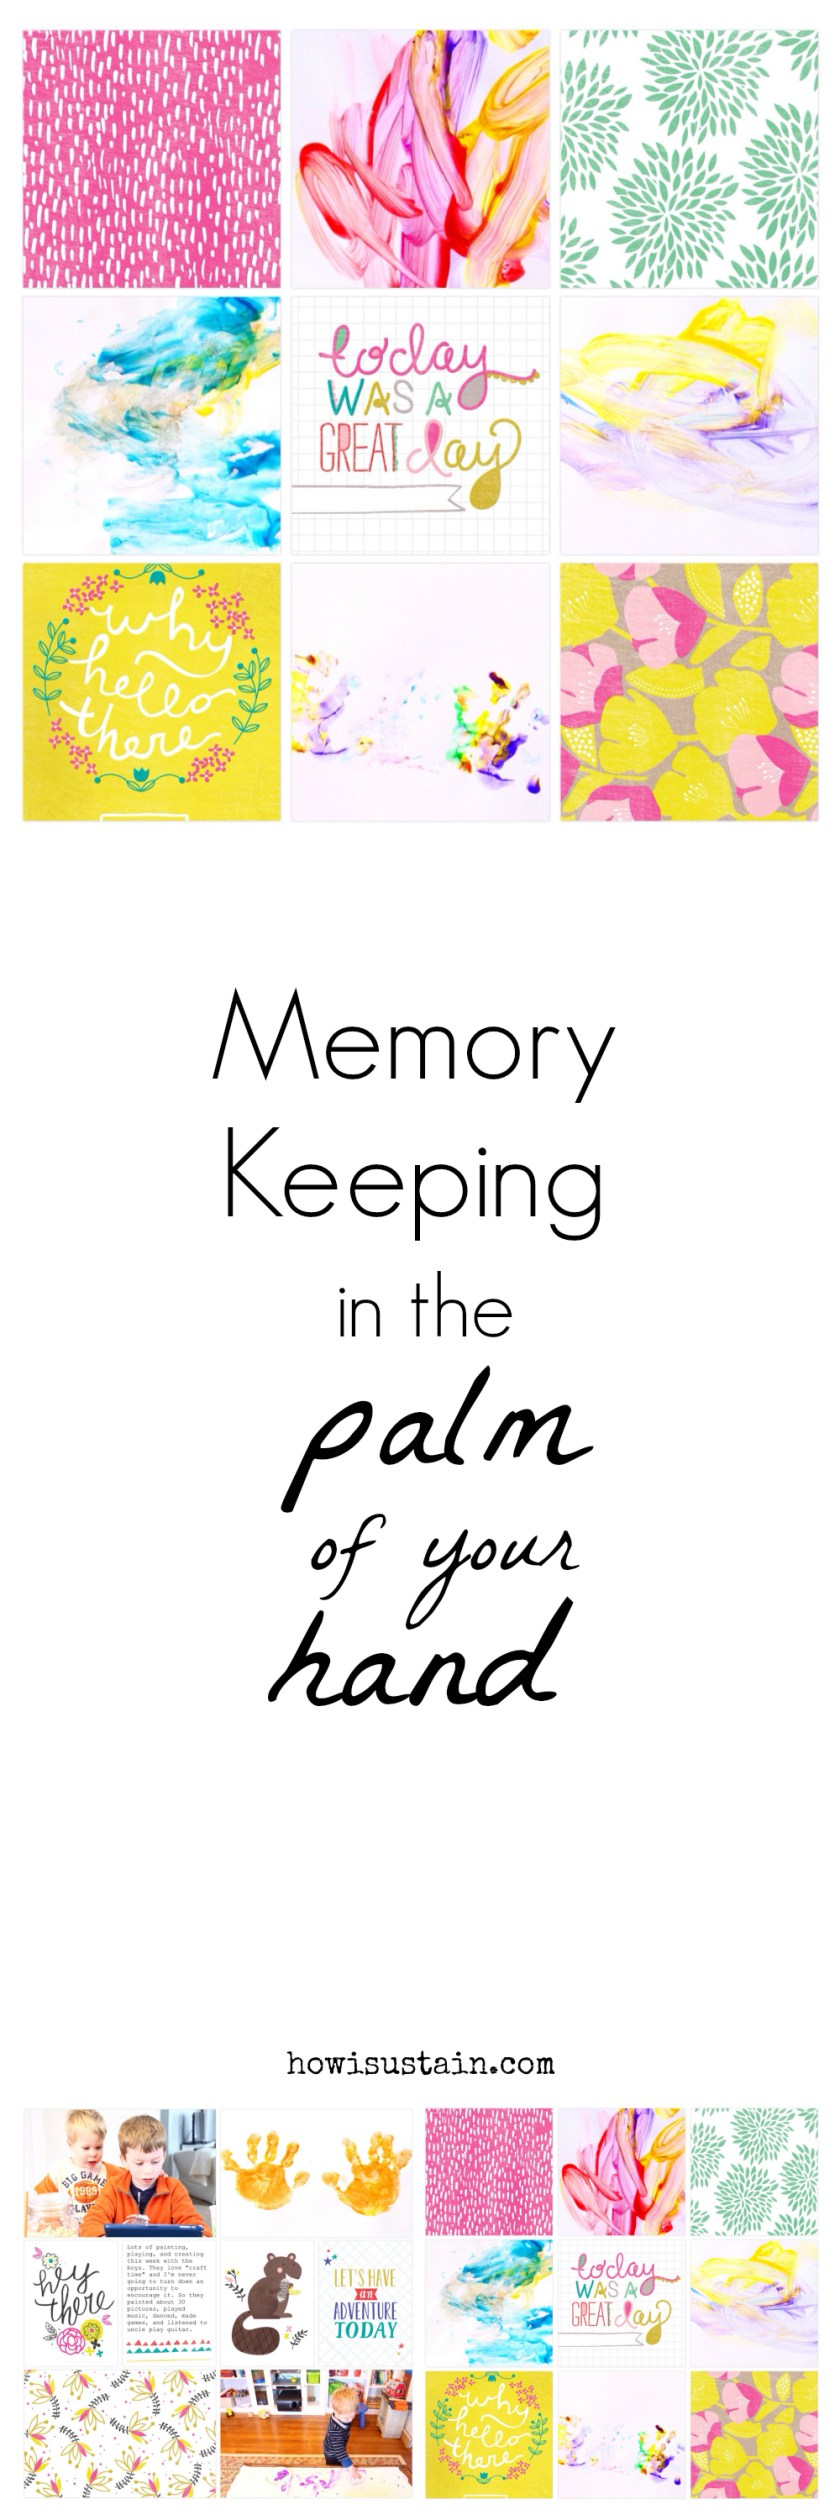 Memory Keeping in the Palm of you Hand. Tips & layouts by Julie Gagen   Project Life Creative Team - Project Life App